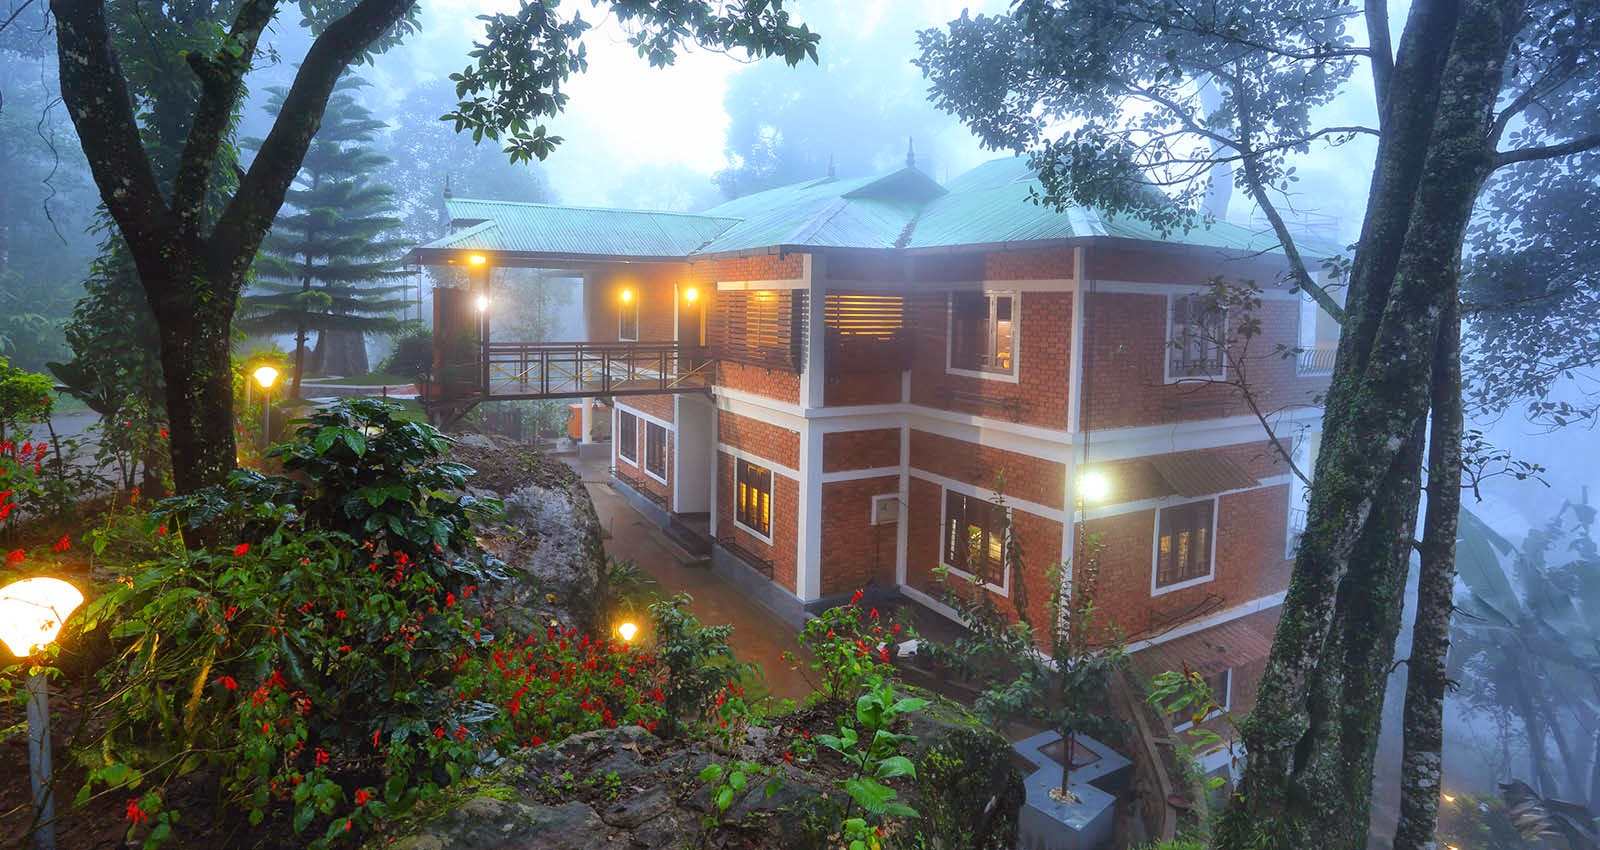 madhumanthra honeymoon resorts munnar, madhu mantra resorts munnar, best discounts for madhumantra resorts munnar